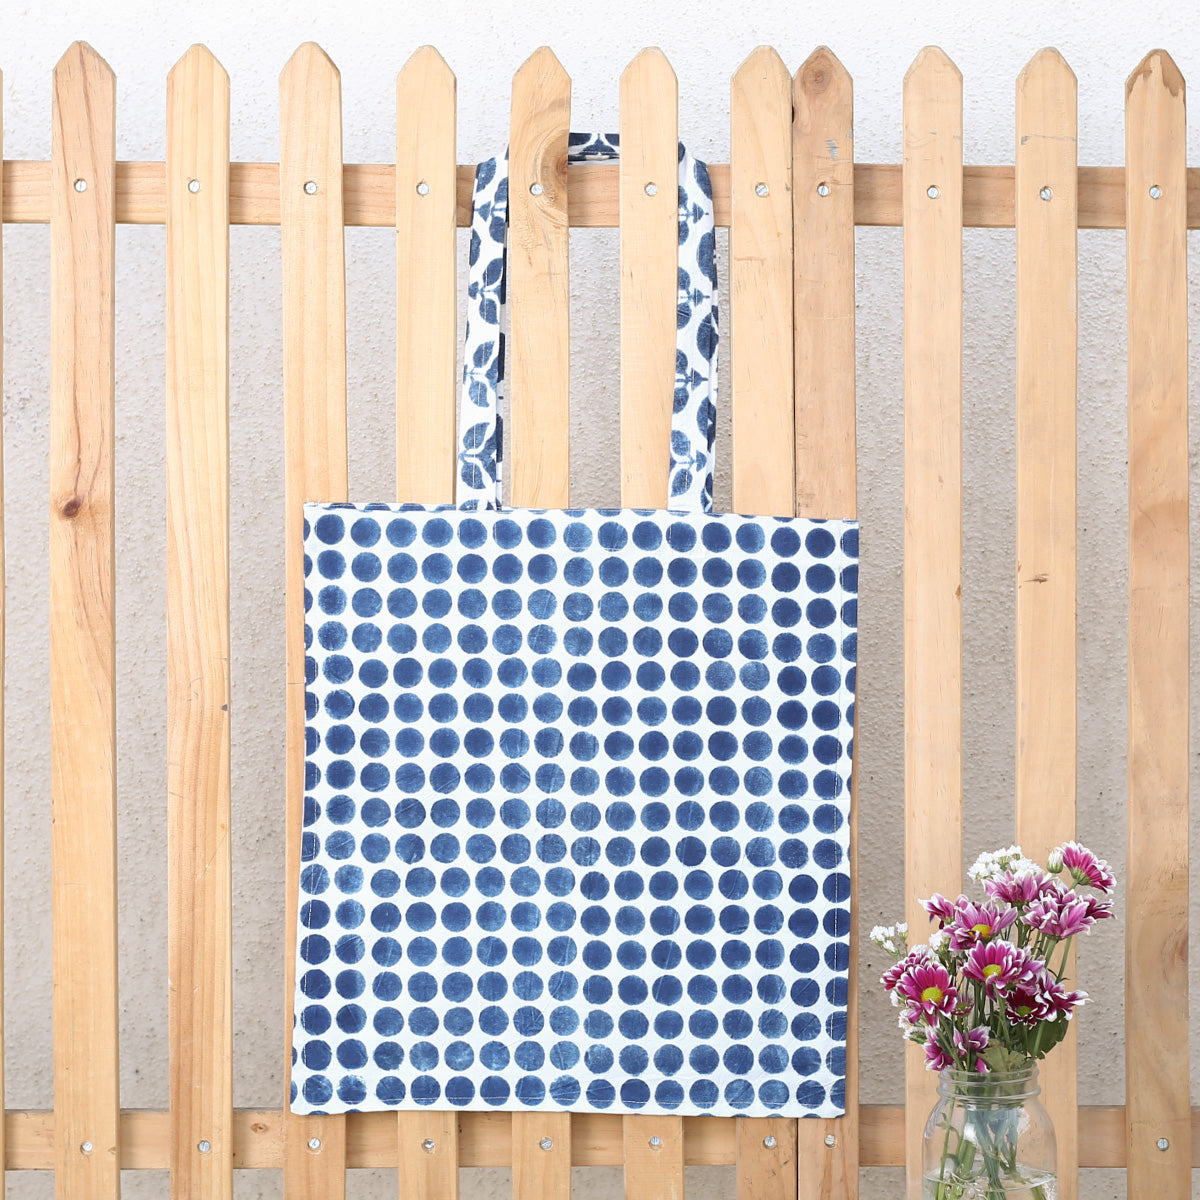 Hand Block Printed Naturally Dyed Organic Cotton Bag 1